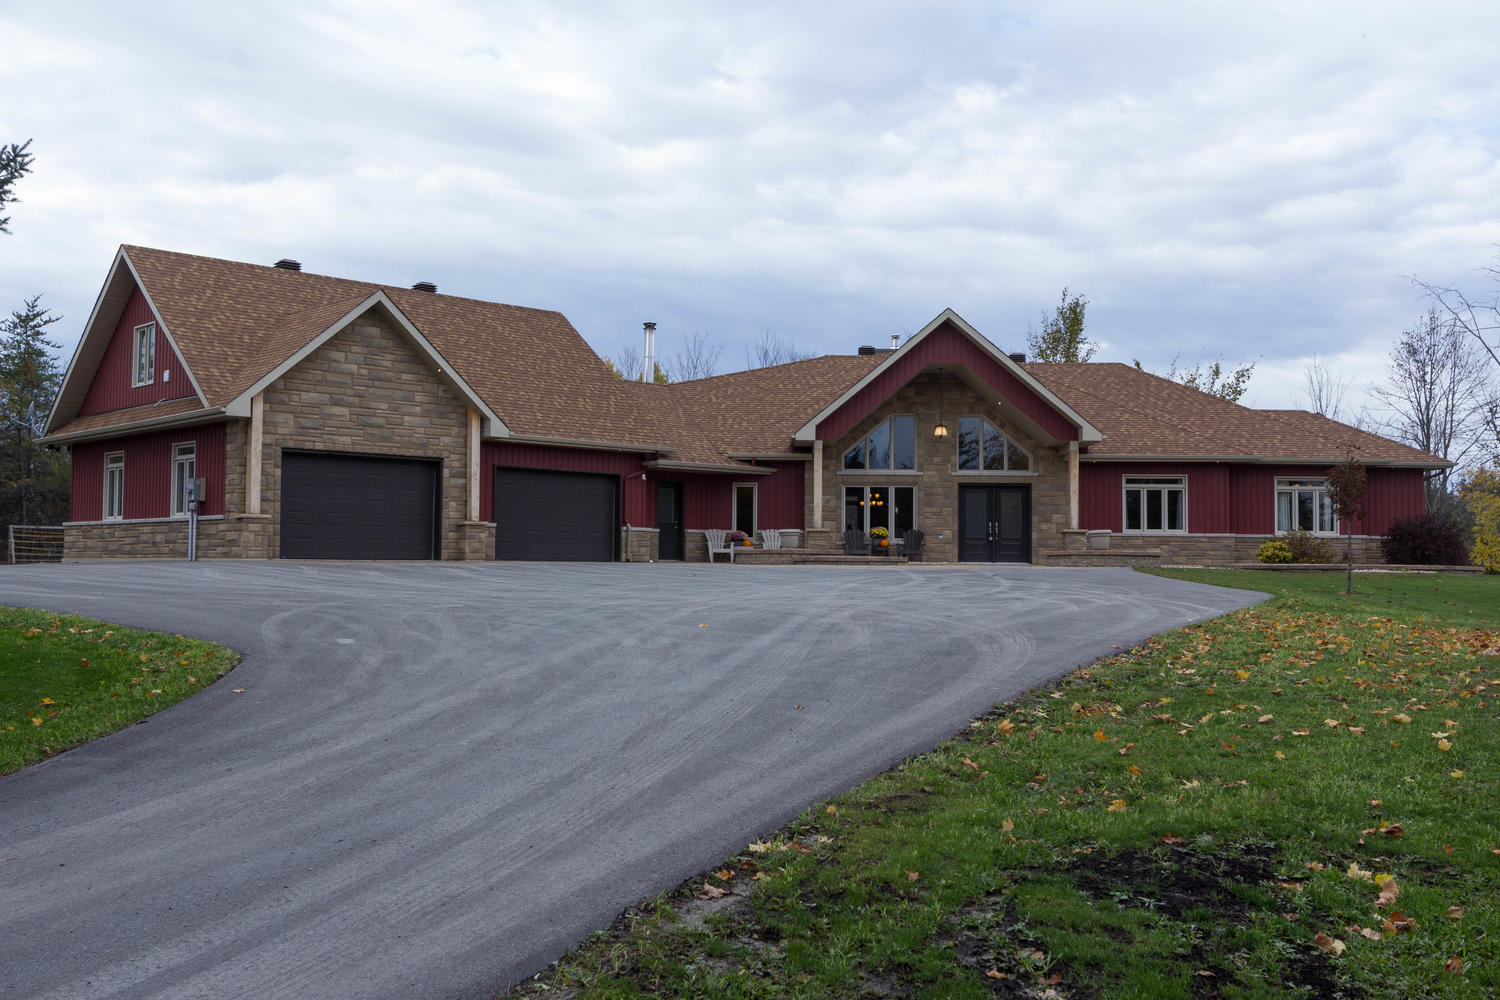 14105 Concession 7-8.  A beautiful custom built bungalow on 5 Acres with 3 bedrooms, 3 bathrooms, and a stunning open concept design.